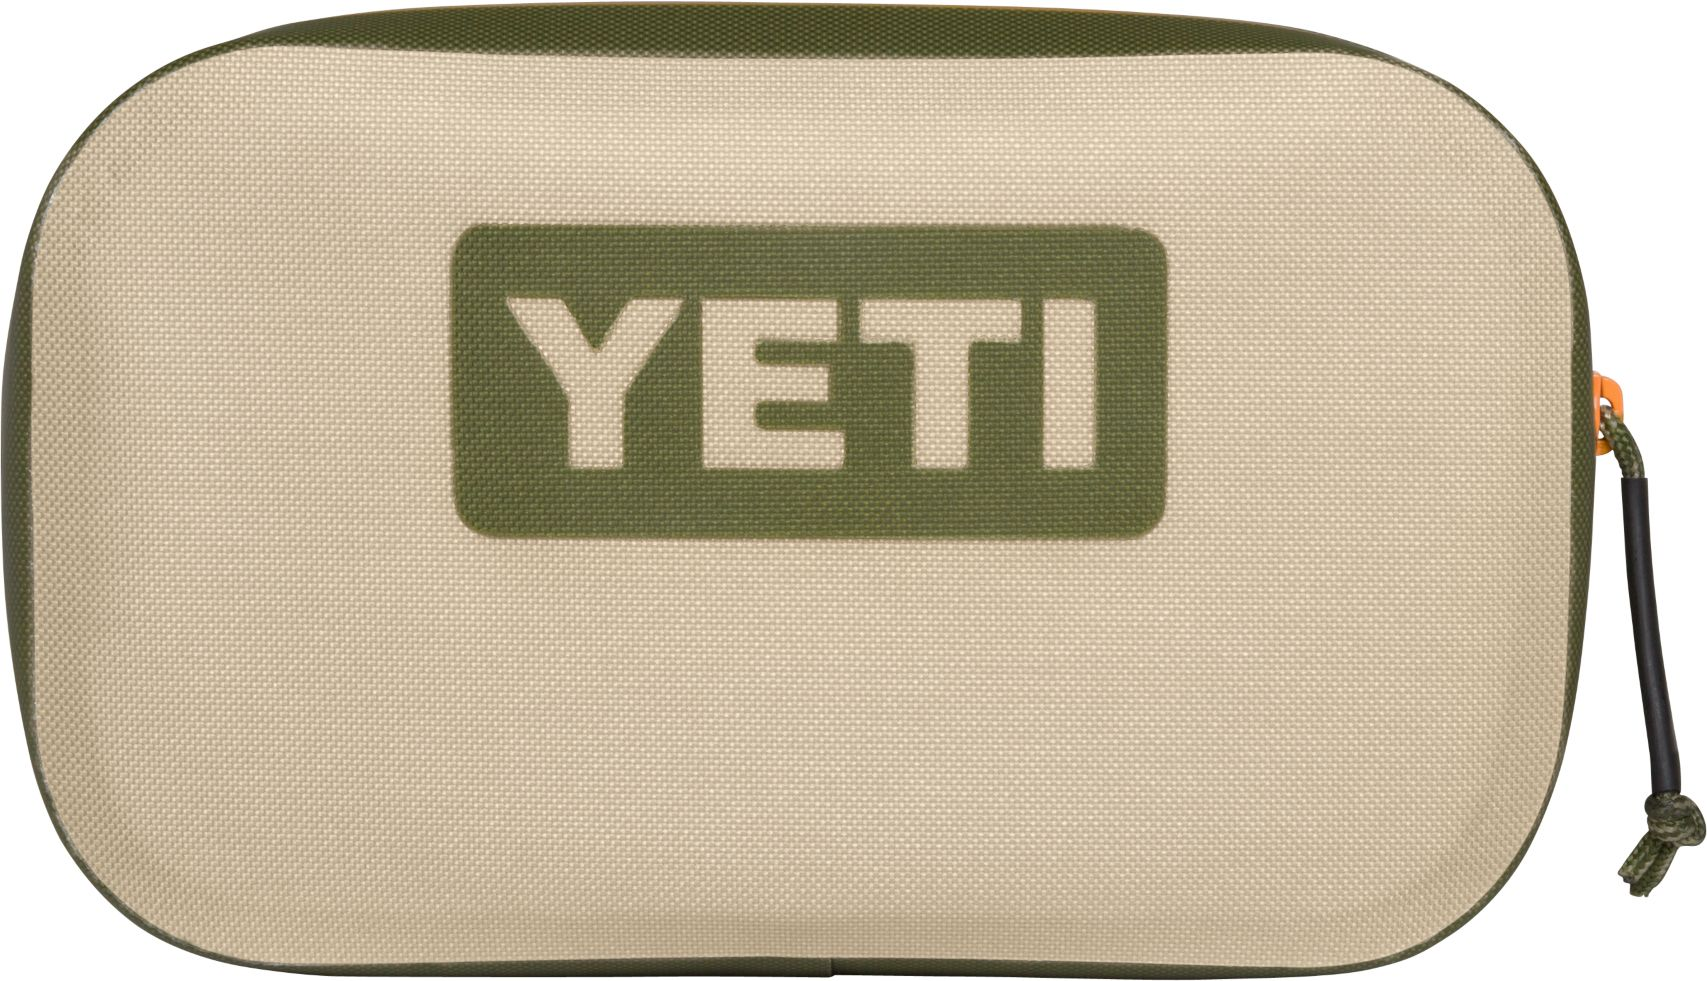 YETI Sidekick| DICK'S Sporting Goods